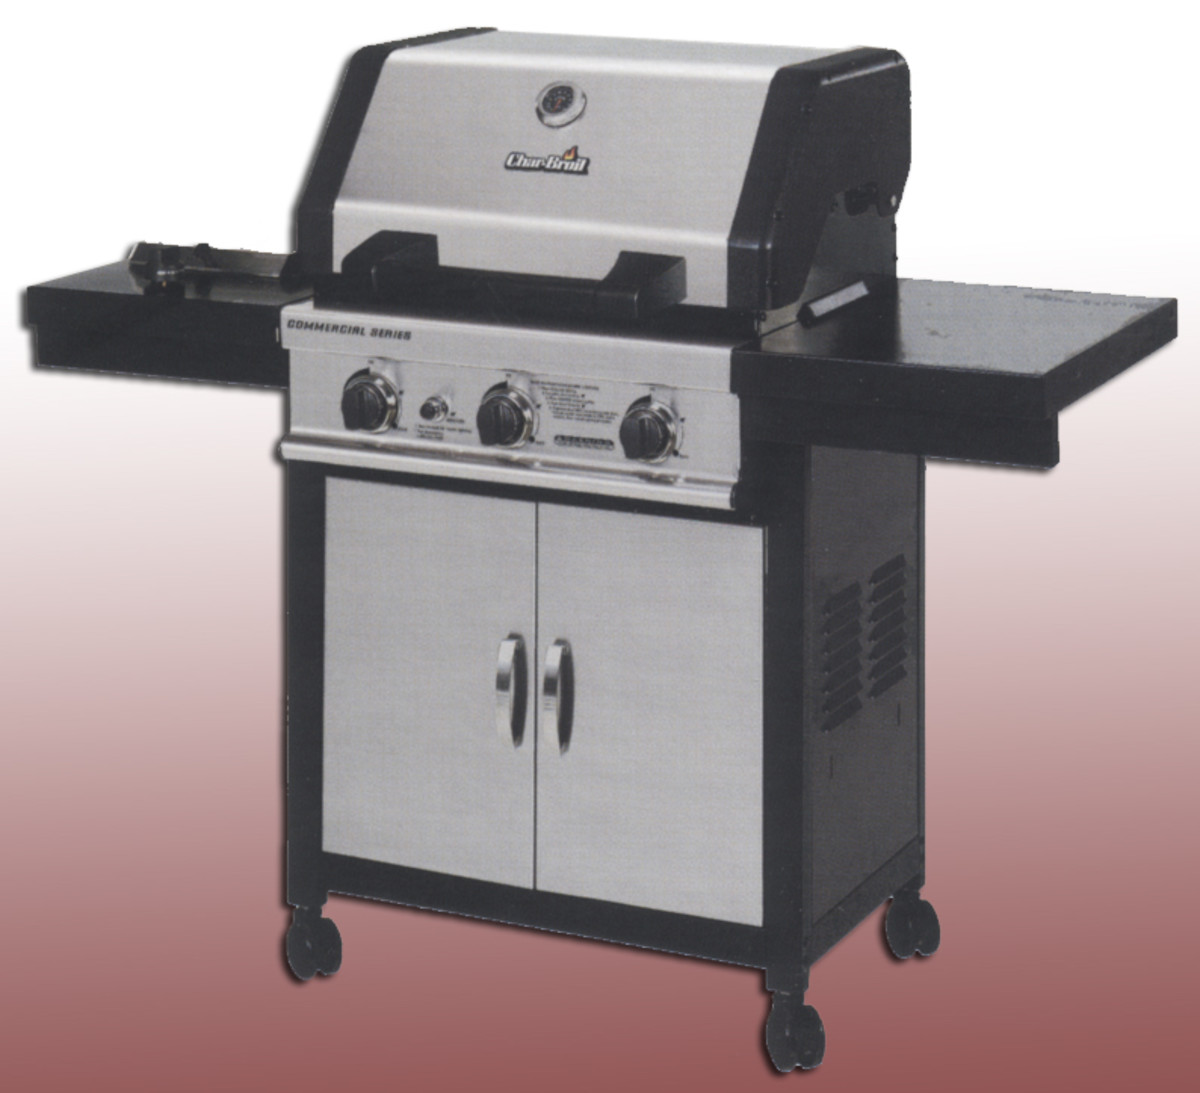 Charbroil BBQ Grills and Replacement Grill Parts.